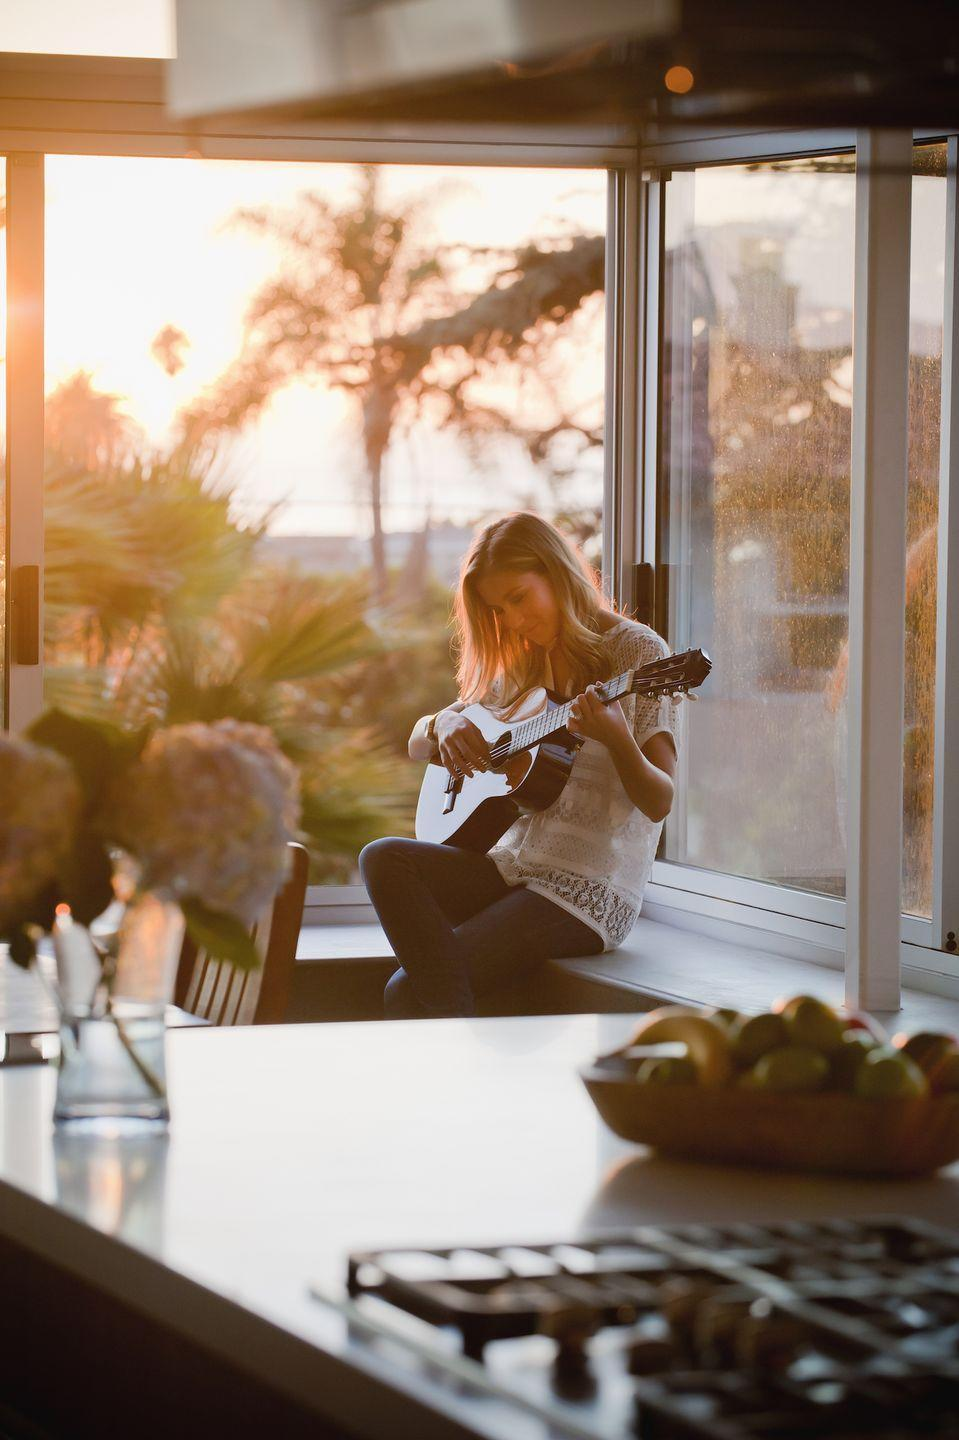 """<p>Berklee College of Music</p><p>Begin learning the names of the strings, tuning, before moving onto theory with such topics as scales, triads, power chords, and fingering and shapes.</p><p><strong>Duration</strong>: Six weeks</p><p><a class=""""link rapid-noclick-resp"""" href=""""https://go.redirectingat.com?id=127X1599956&url=https%3A%2F%2Fwww.coursera.org%2Flearn%2Fguitar&sref=https%3A%2F%2Fwww.elle.com%2Fuk%2Flife-and-culture%2Fg32077844%2Fbest-online-learning-courses%2F"""" rel=""""nofollow noopener"""" target=""""_blank"""" data-ylk=""""slk:ENROLL FOR FREE"""">ENROLL FOR FREE </a></p>"""